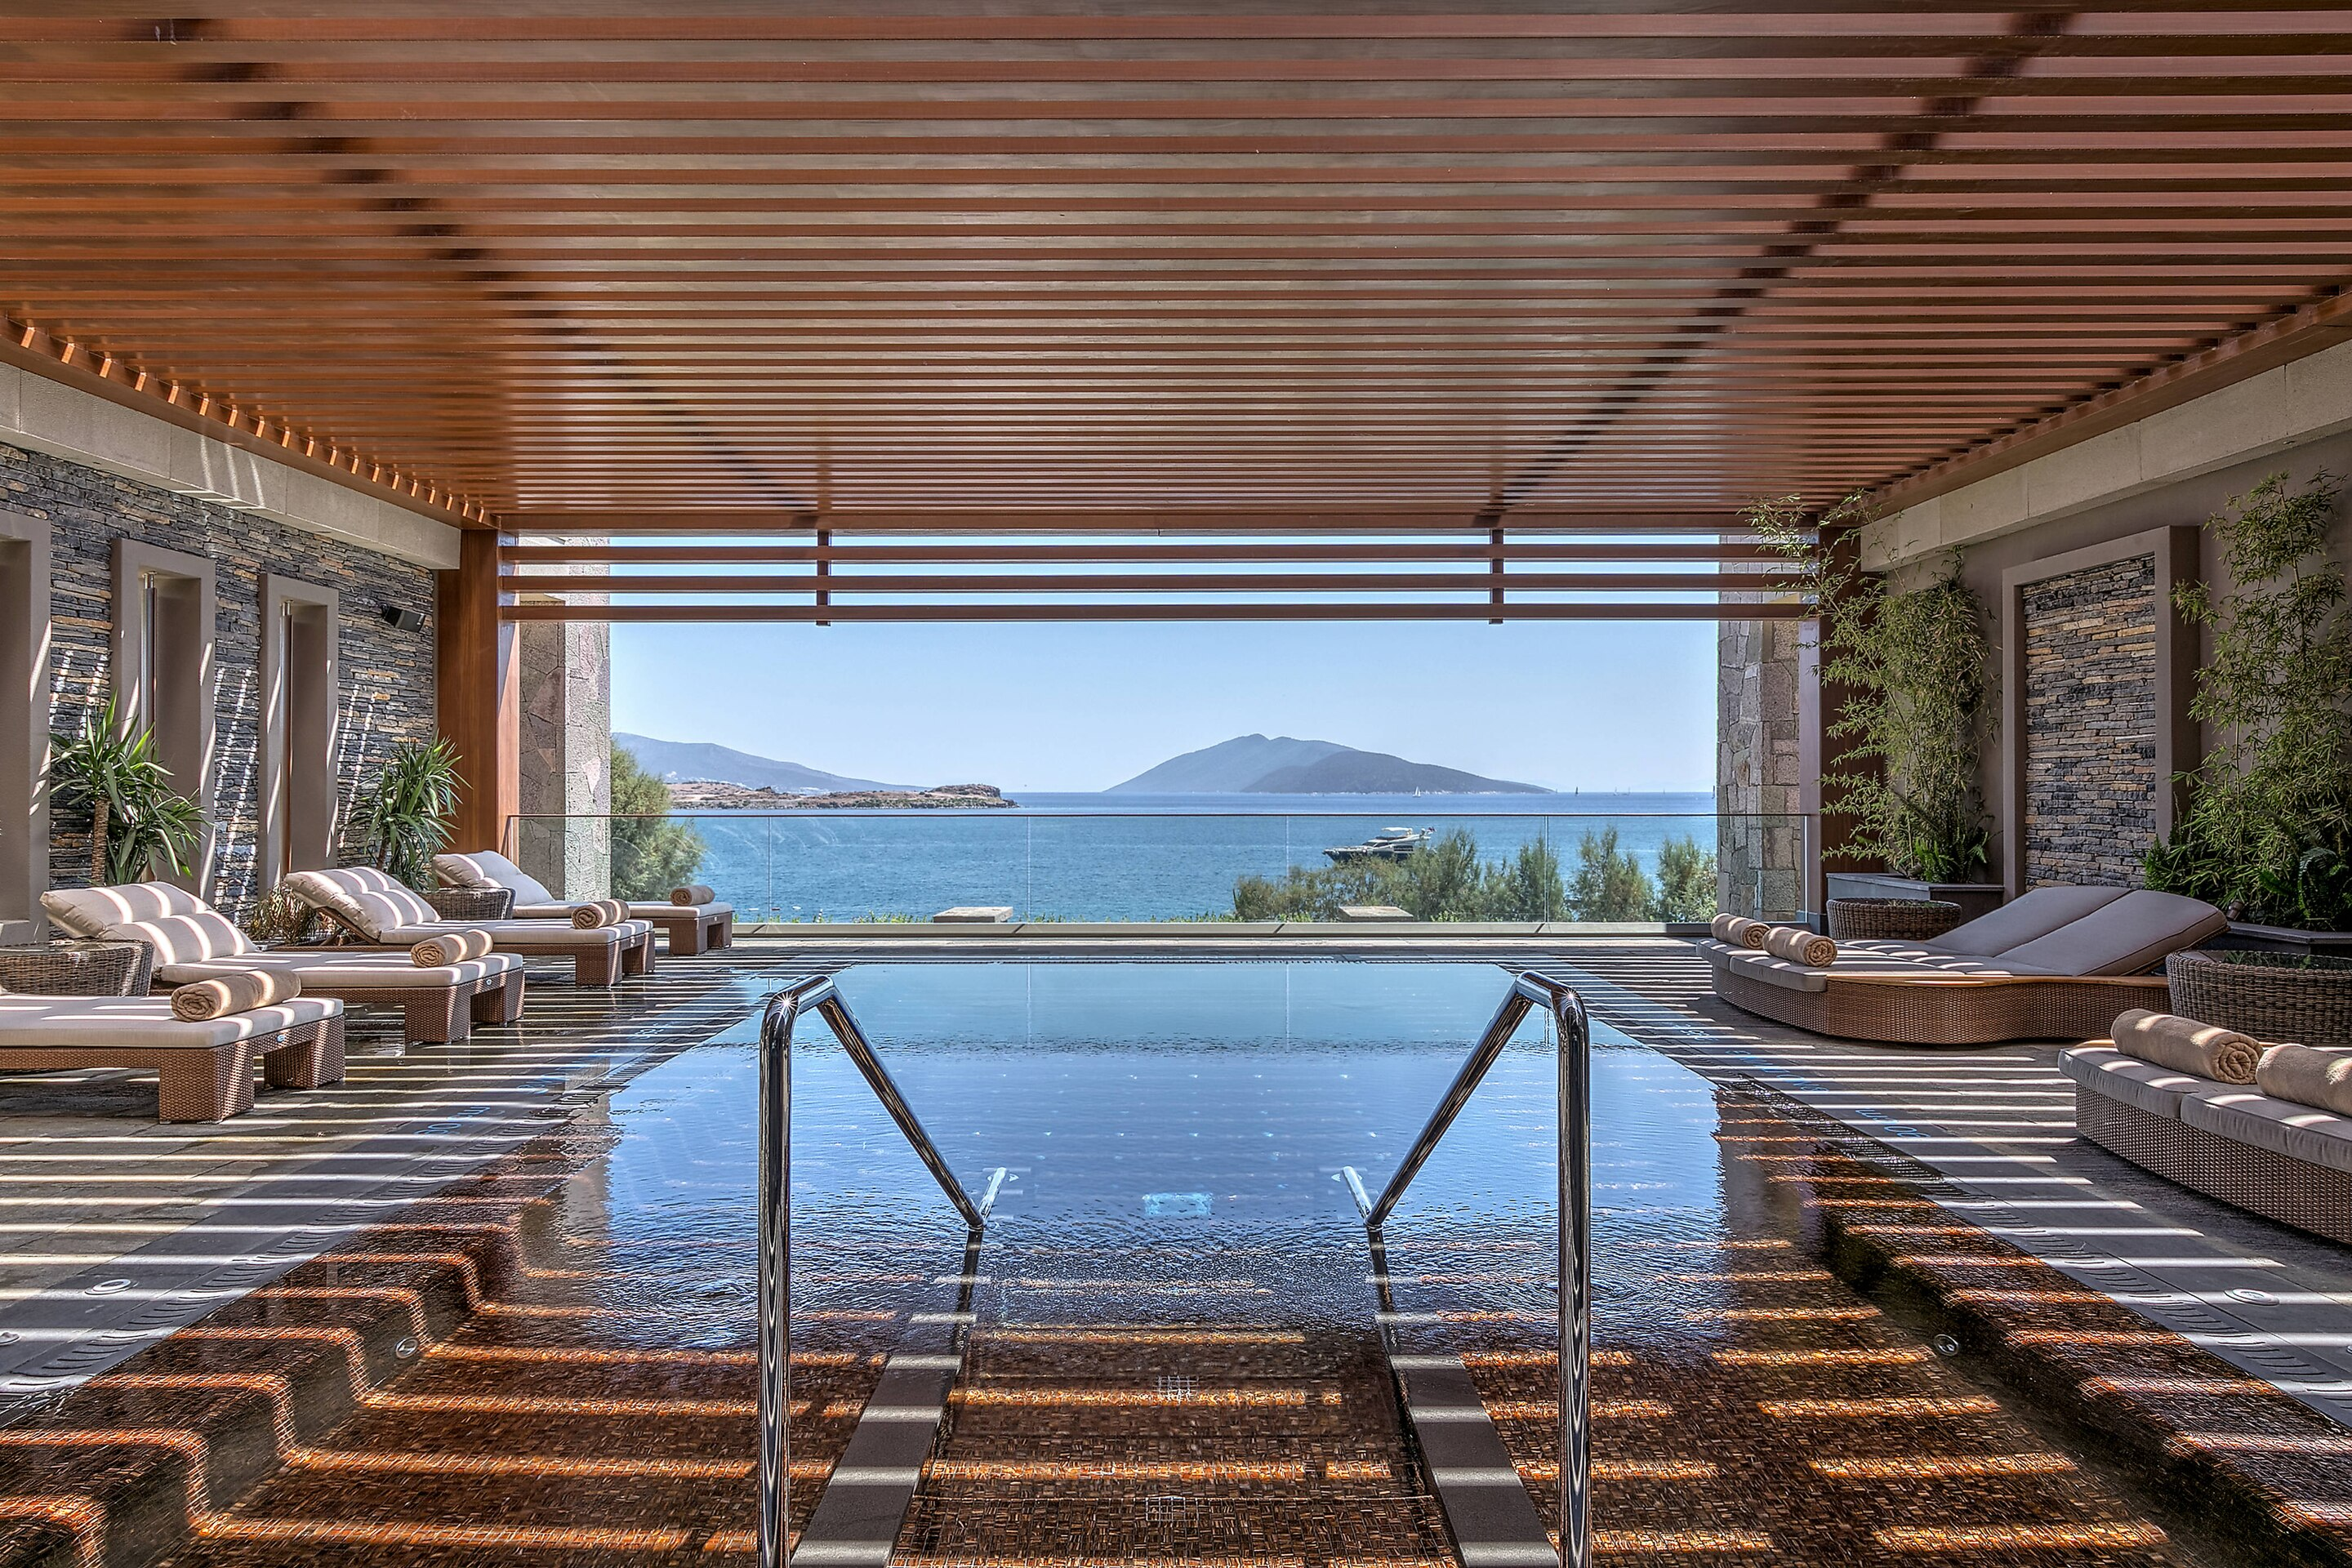 Caresse bodrum outdoor spa pool